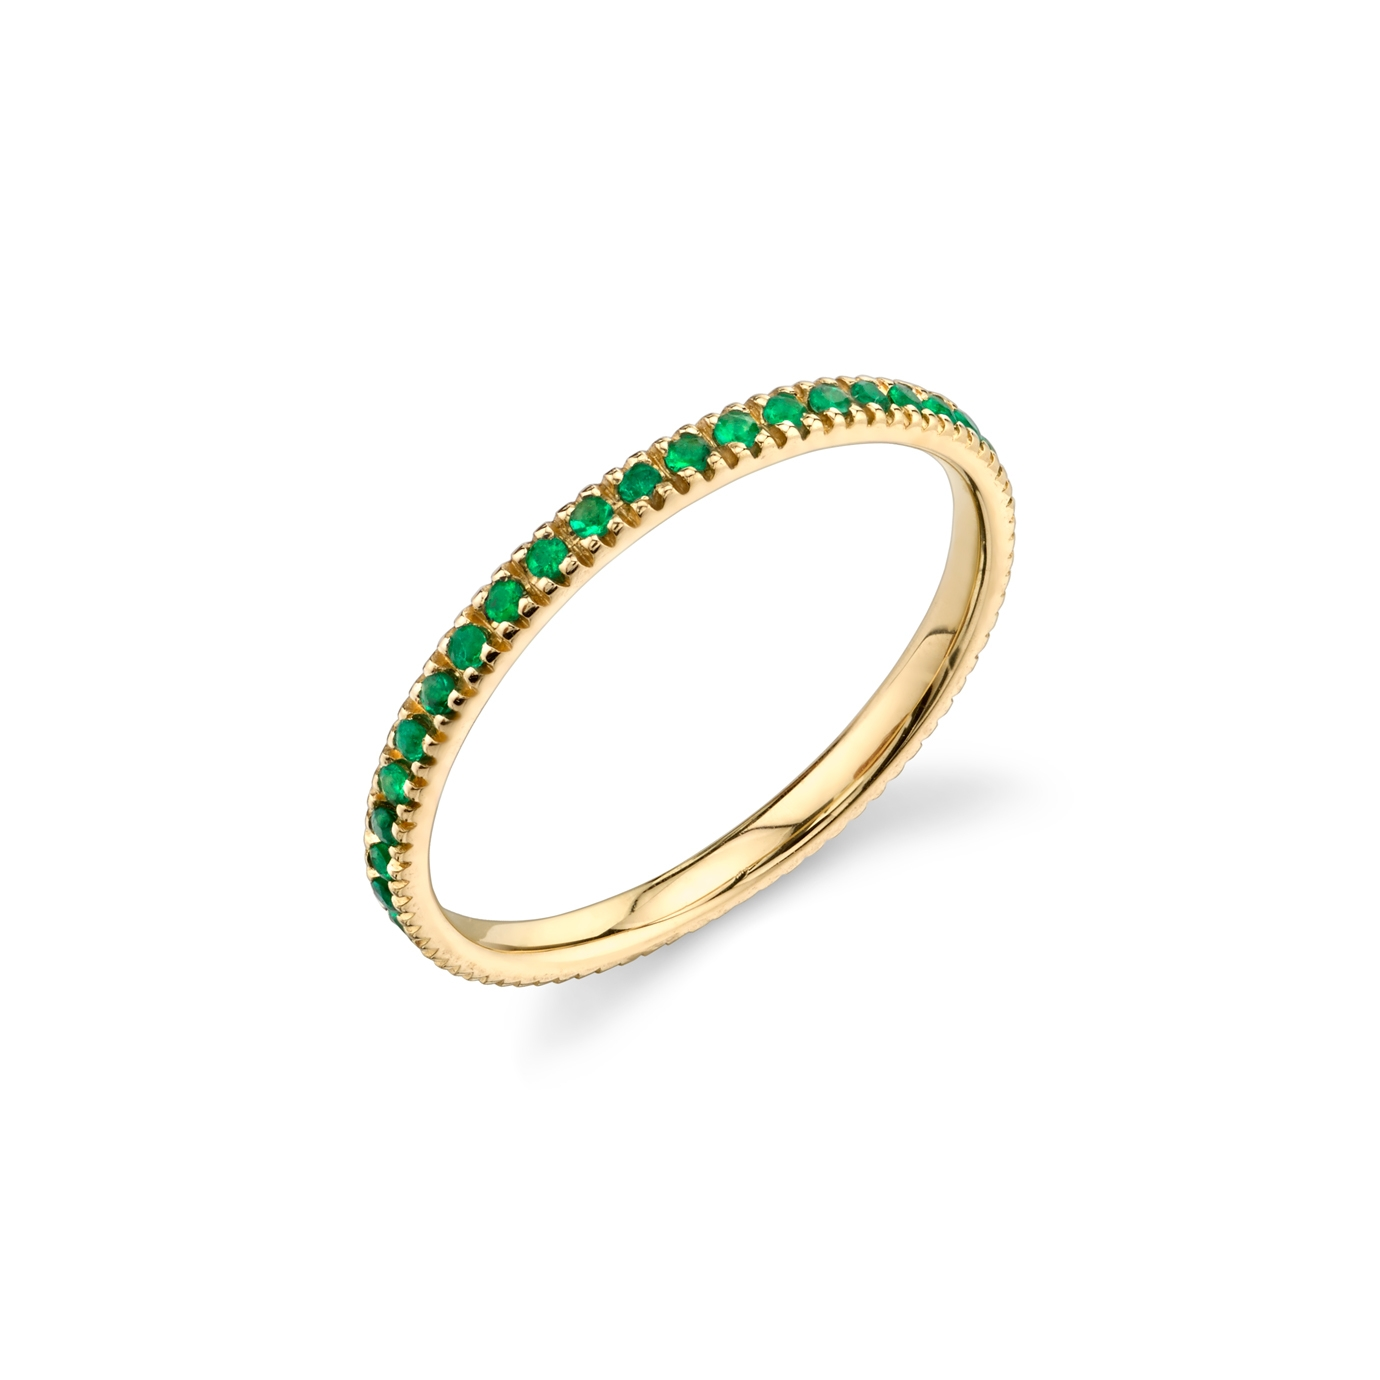 SYDNEY EVAN 14CT YELLOW GOLD EMERALD ETERNITY RING